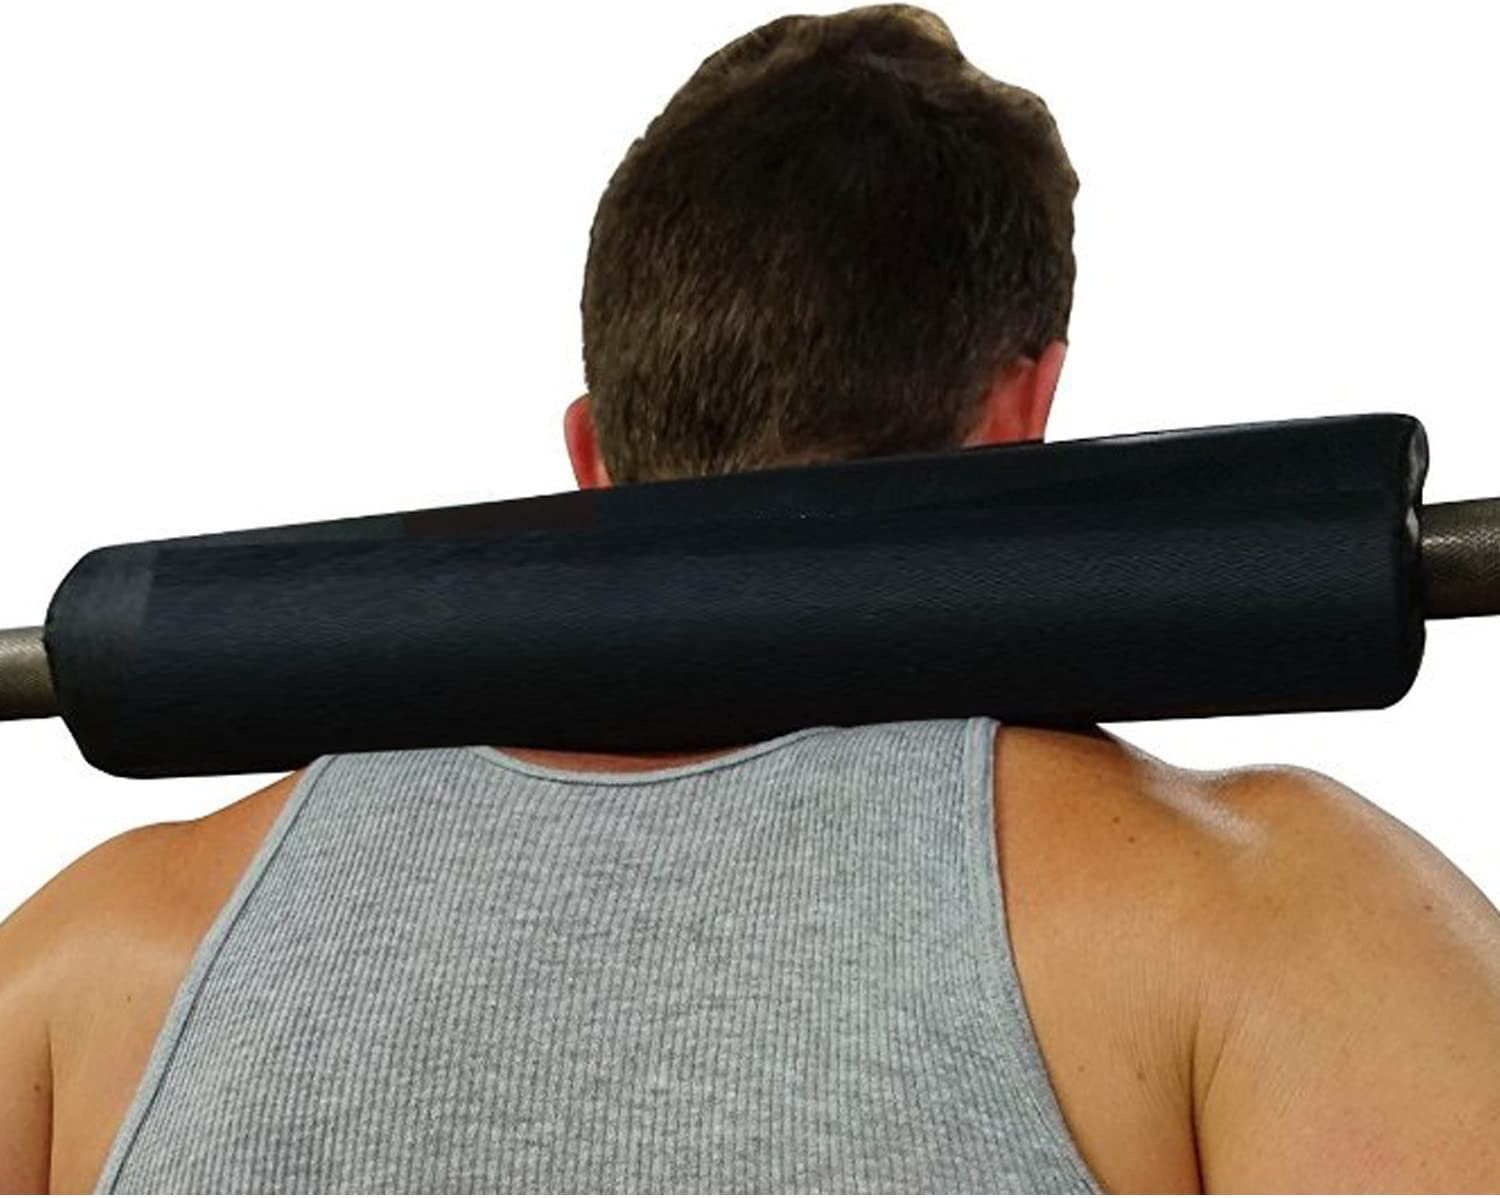 Dark Iron Fitness 17 Extra Thick Barbell Neck Pad Shoulder Support for Weight Lifting Crossfit Powerlifting /& More Fits 2 Inch Olympic Size Bars and a Smith Machine Bar Perfectly